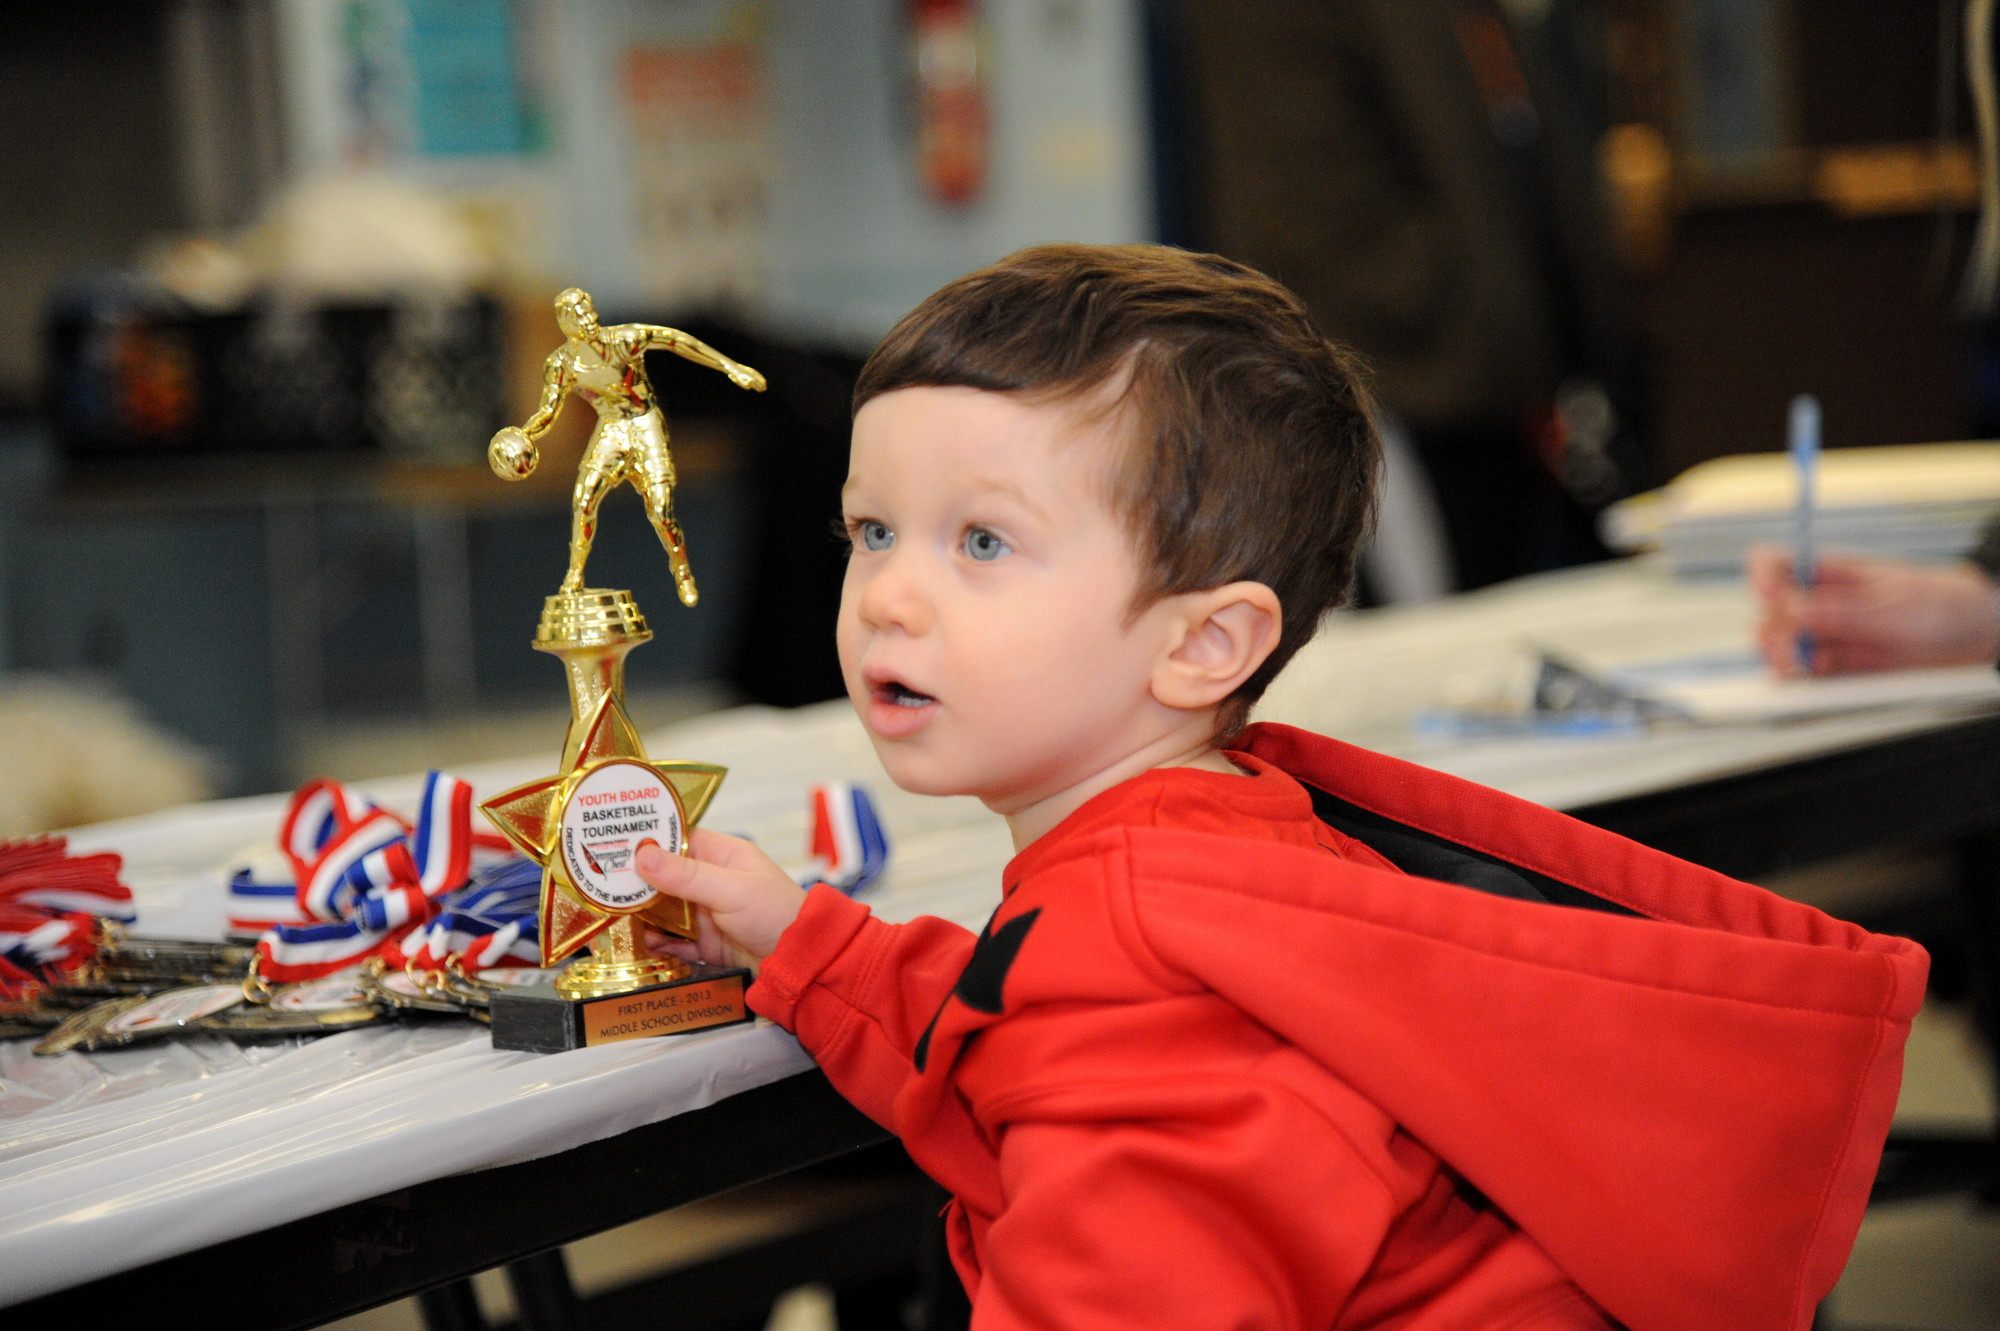 Eyes on the prize: Nearly 2-year-old Addison Dugan, a relative of Adam Barsel, views one of the trophies presented to the winning teamas.